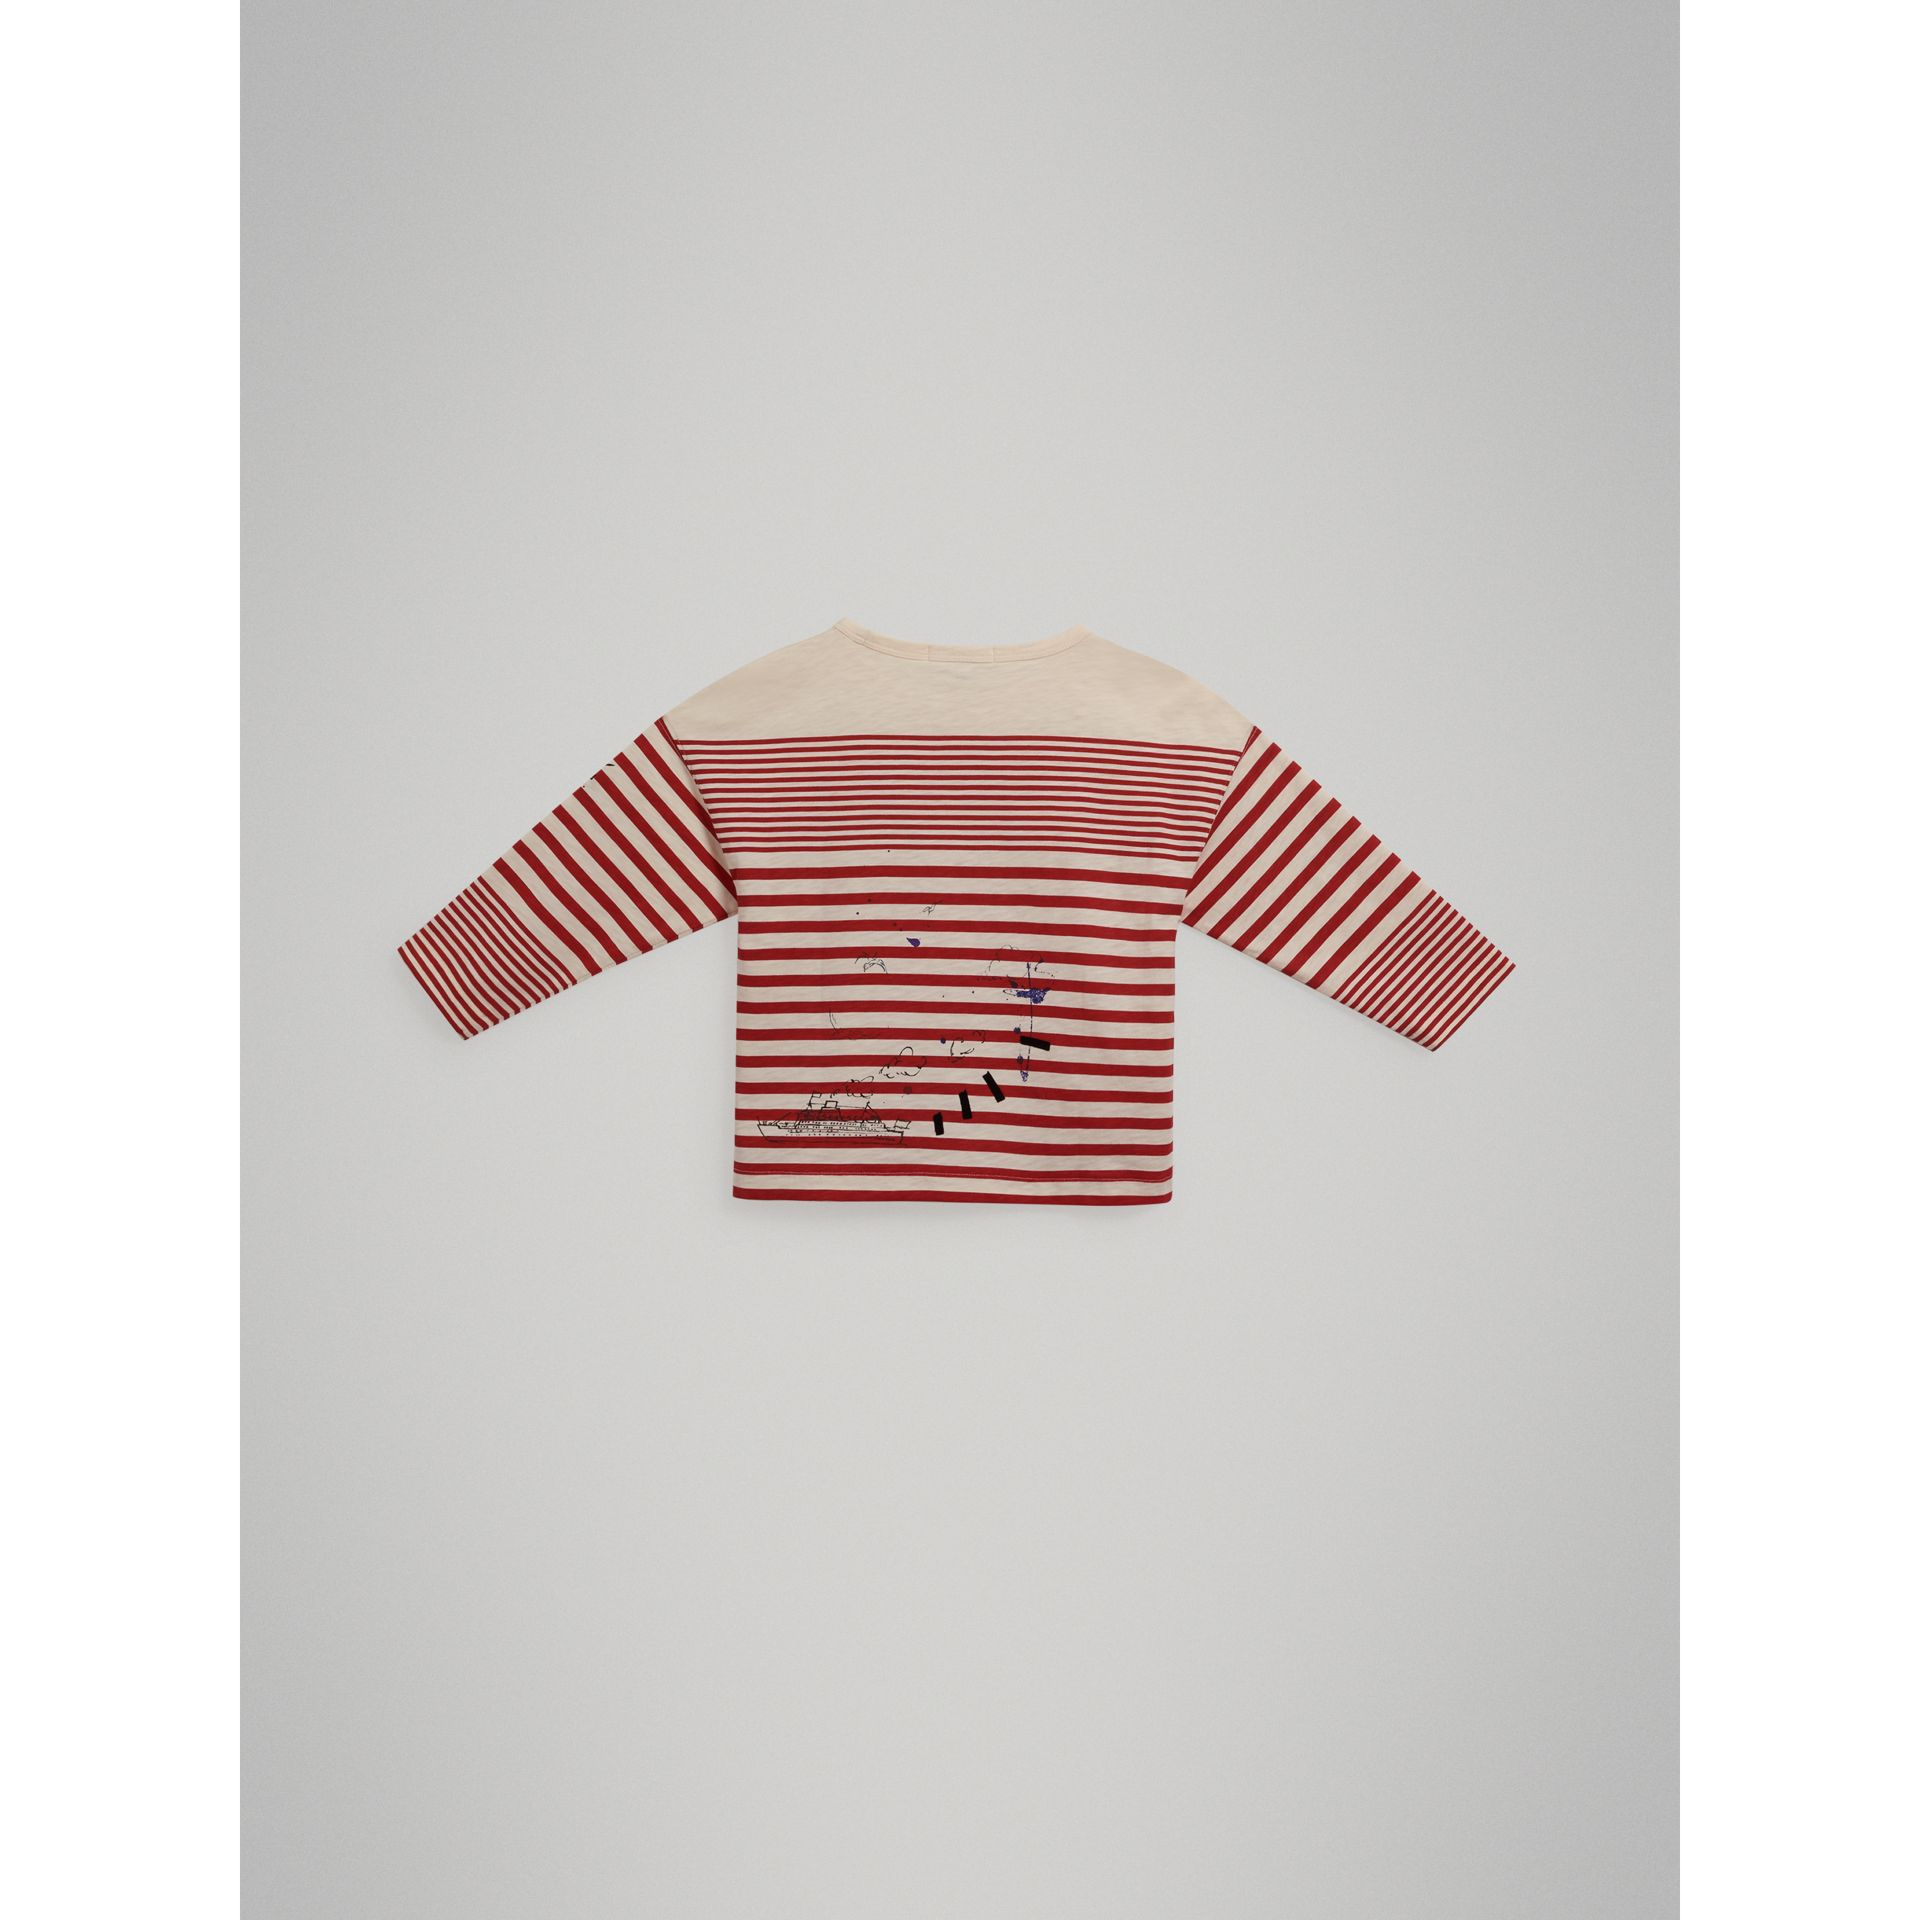 SW1 Print Striped Cotton Top in Bright Red/natural White - Boy | Burberry - gallery image 3